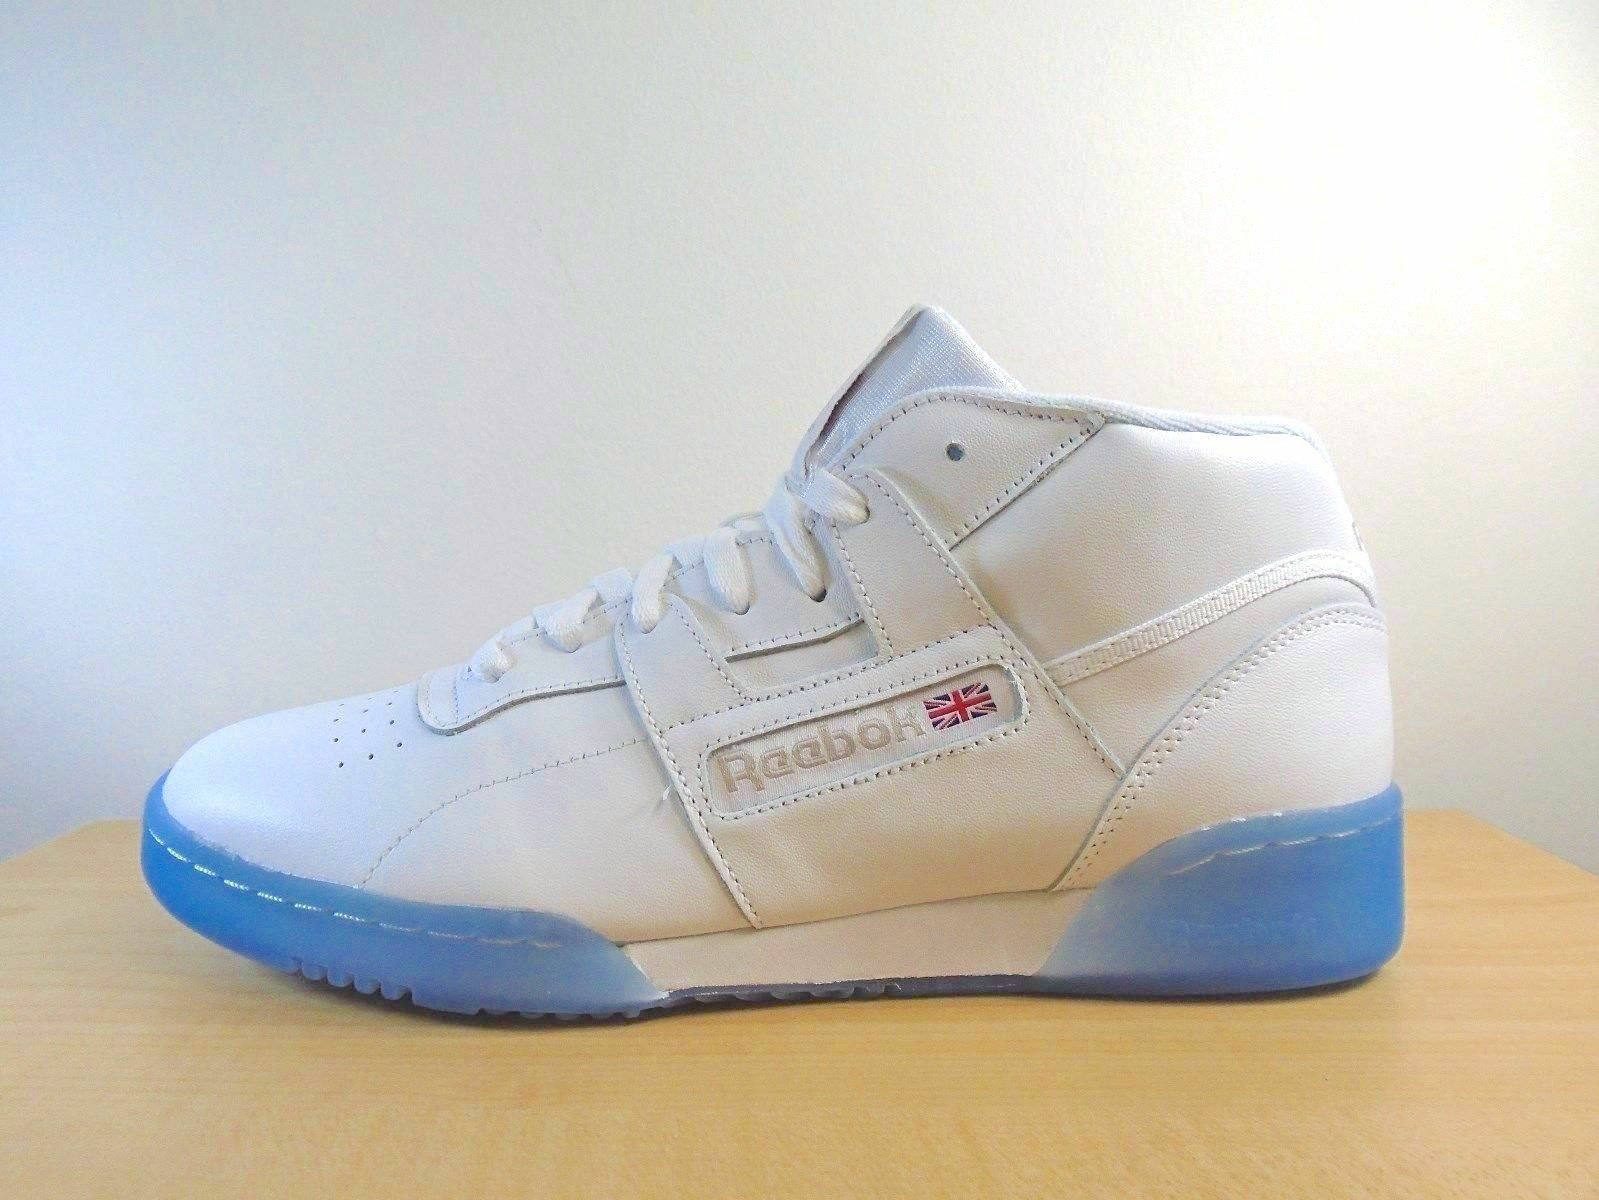 hommes REEBOK CLASSIC MID WORKOUT MID CLASSIC CLEAN BWI blanc/Steel/ rouge -BS7445- ATHLETIC bc2f36